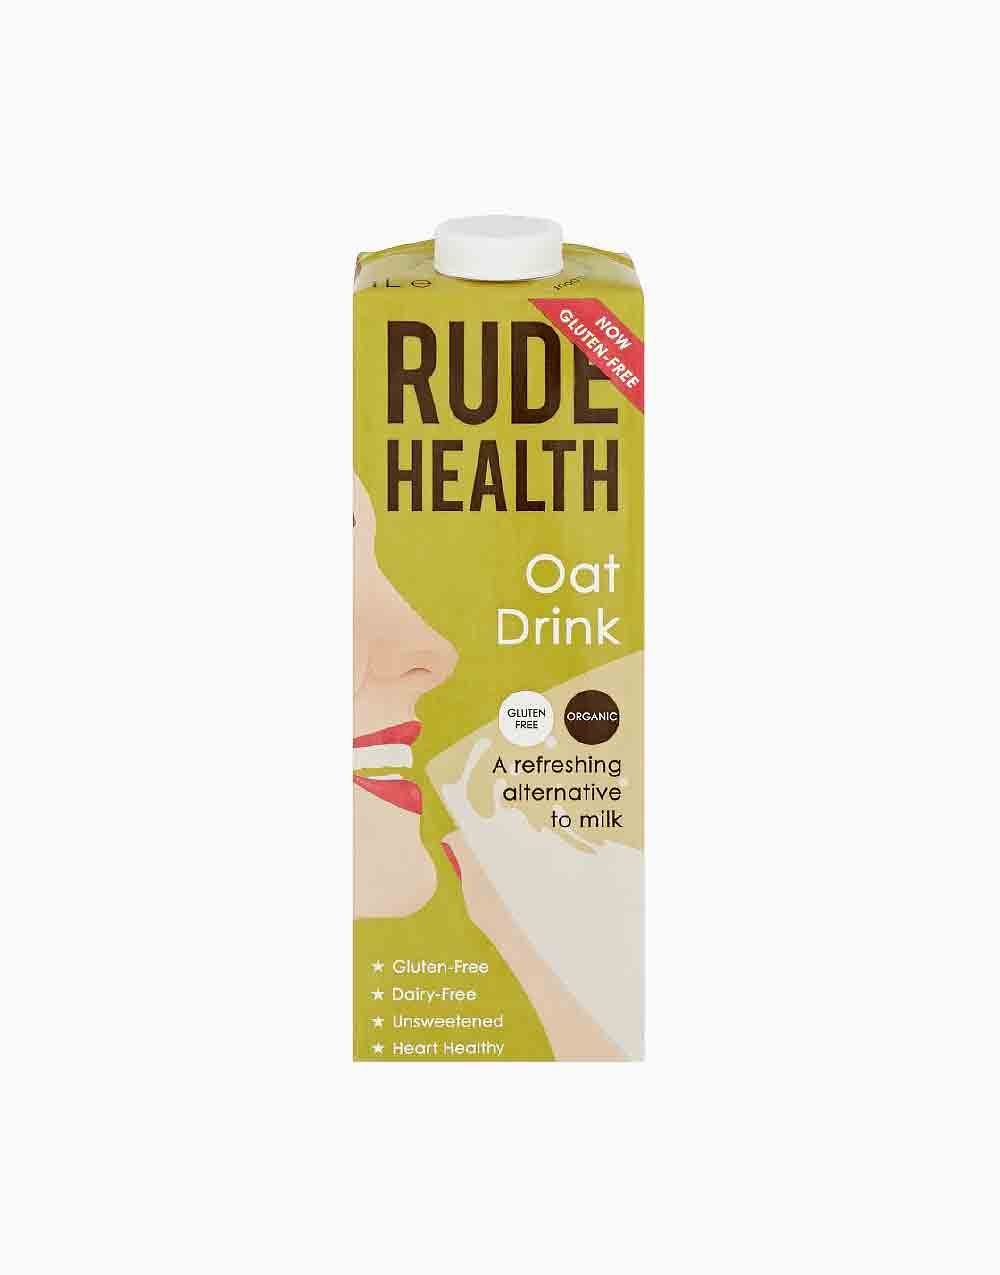 Rude Health Oat Drink (1L) by Raw Bites